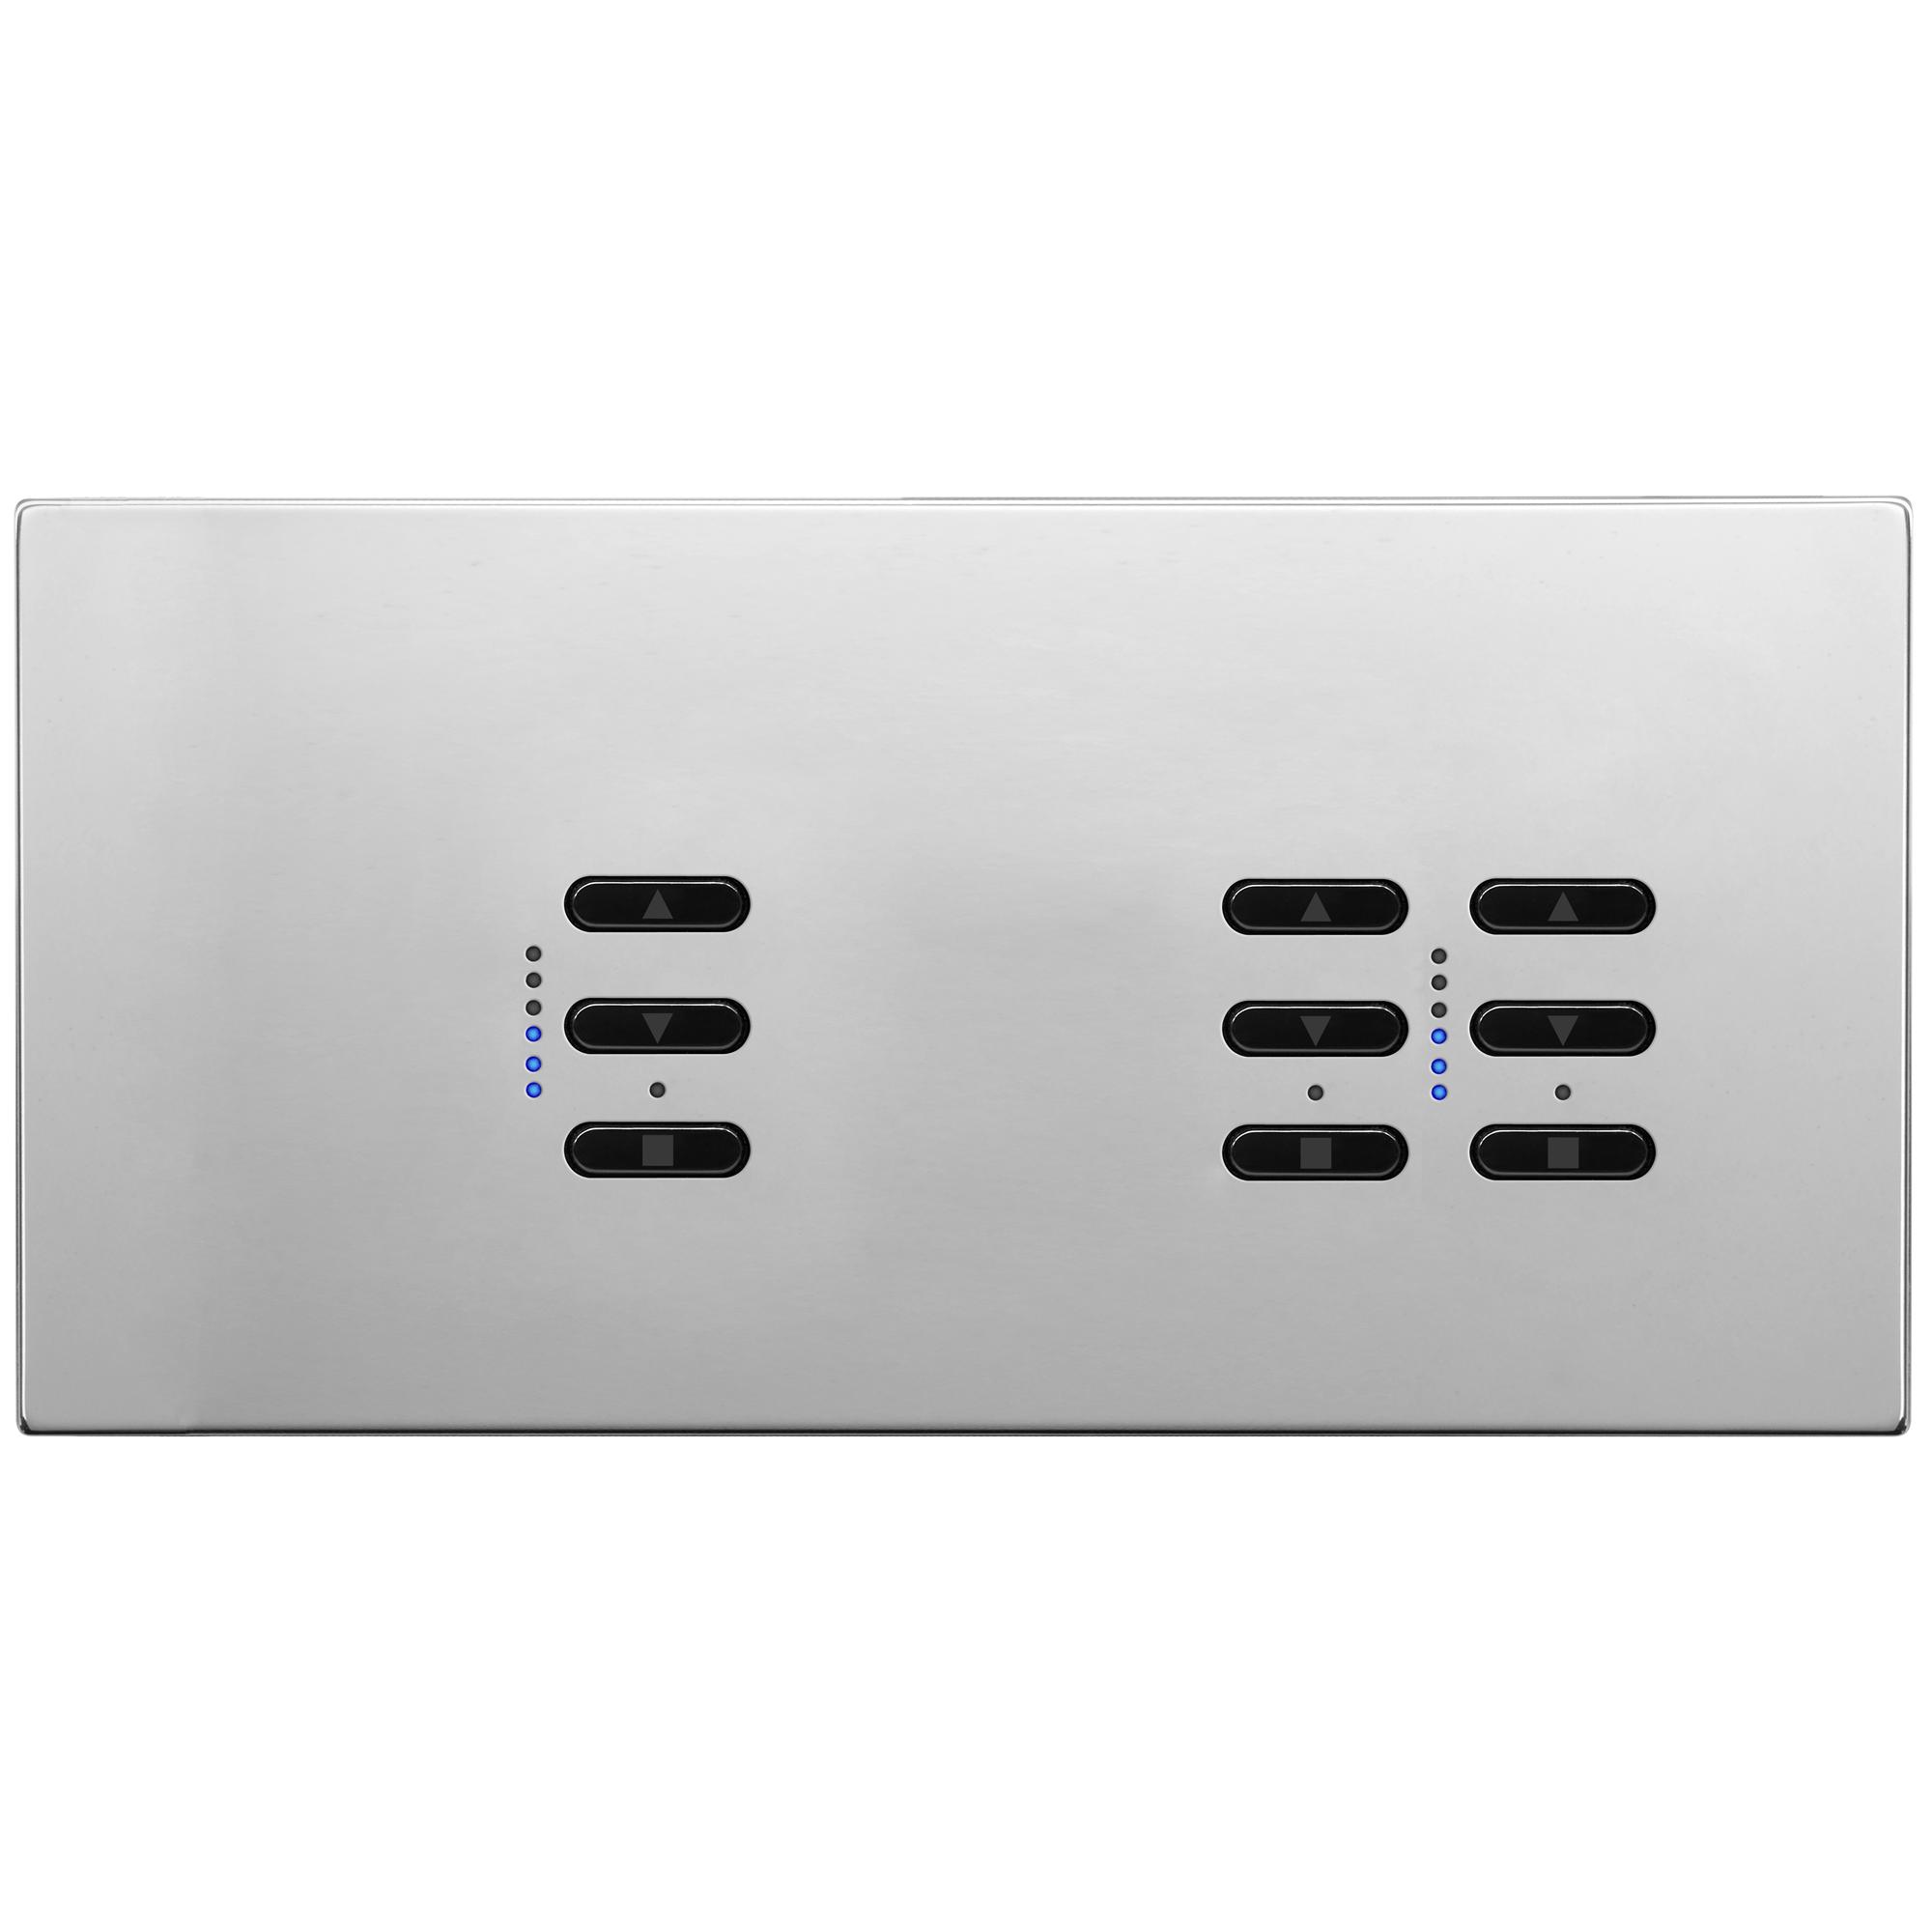 Wise Fusion Dimmer Master Wired 3 Gang 240V Polished Stainless Steel ...